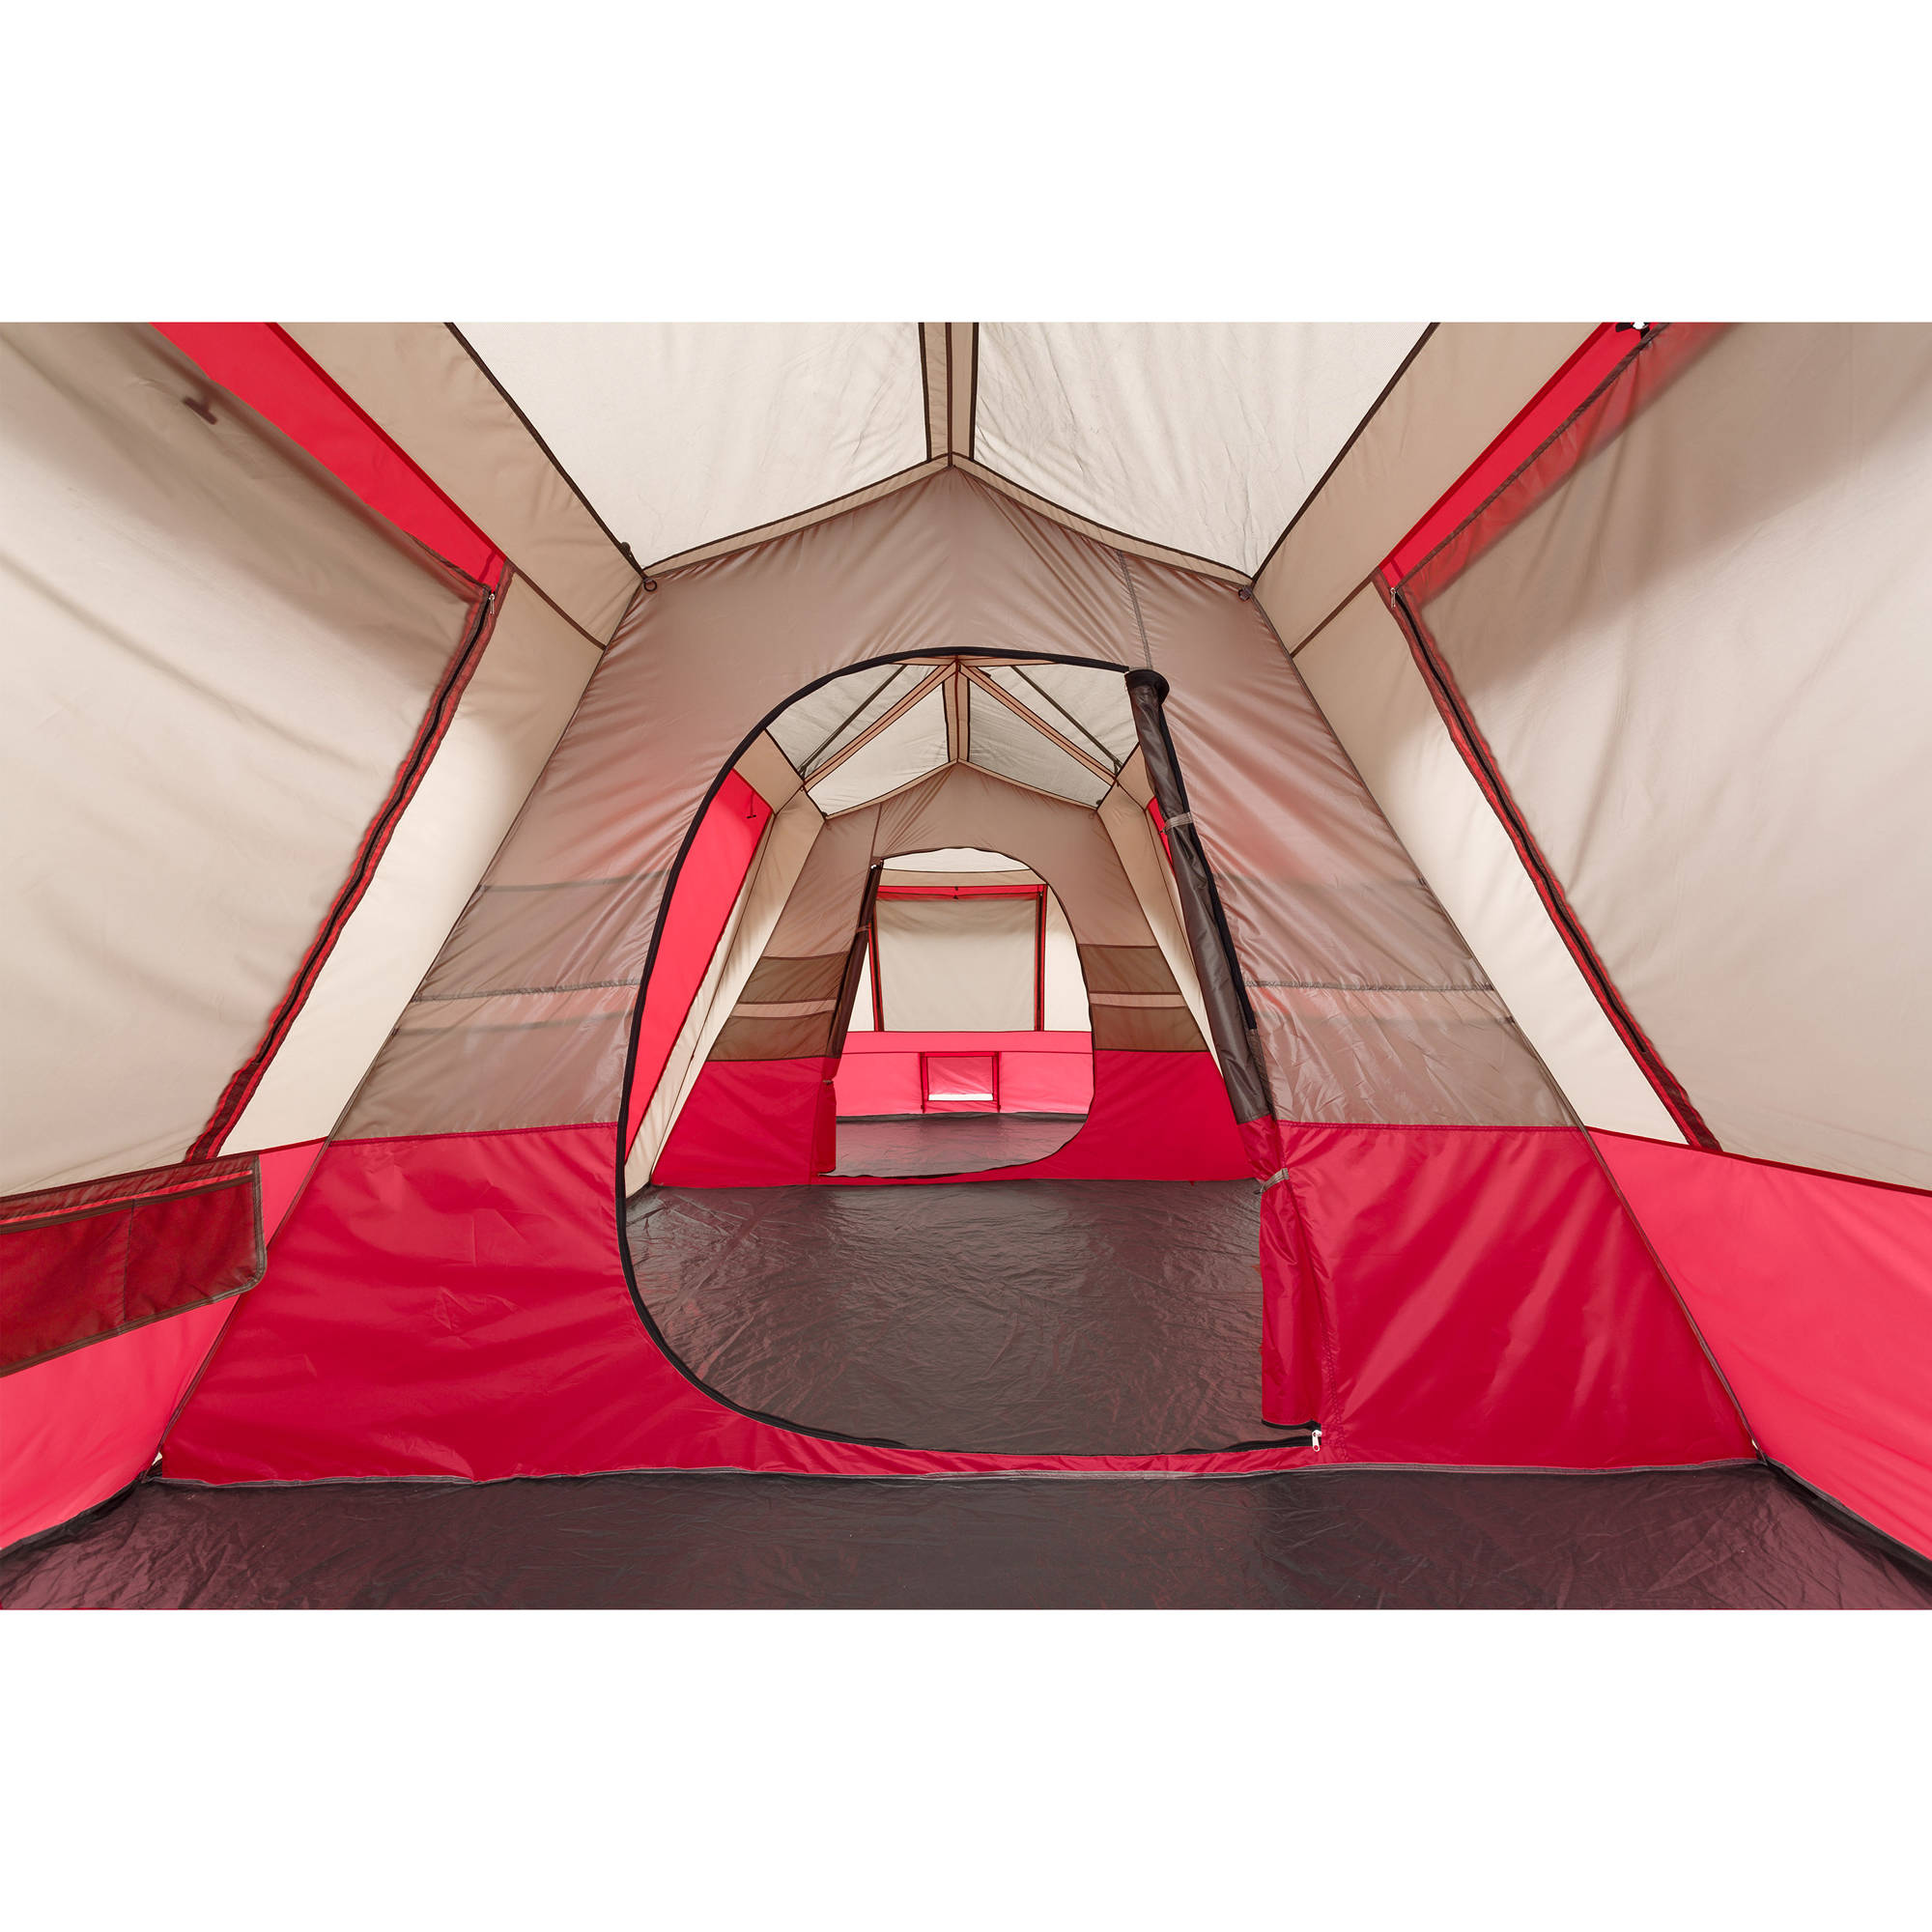 Ozark Trail 15 Person 3 Room Split Plan Instant Cabin Tent - Walmart.com  sc 1 st  Walmart & Ozark Trail 15 Person 3 Room Split Plan Instant Cabin Tent ...